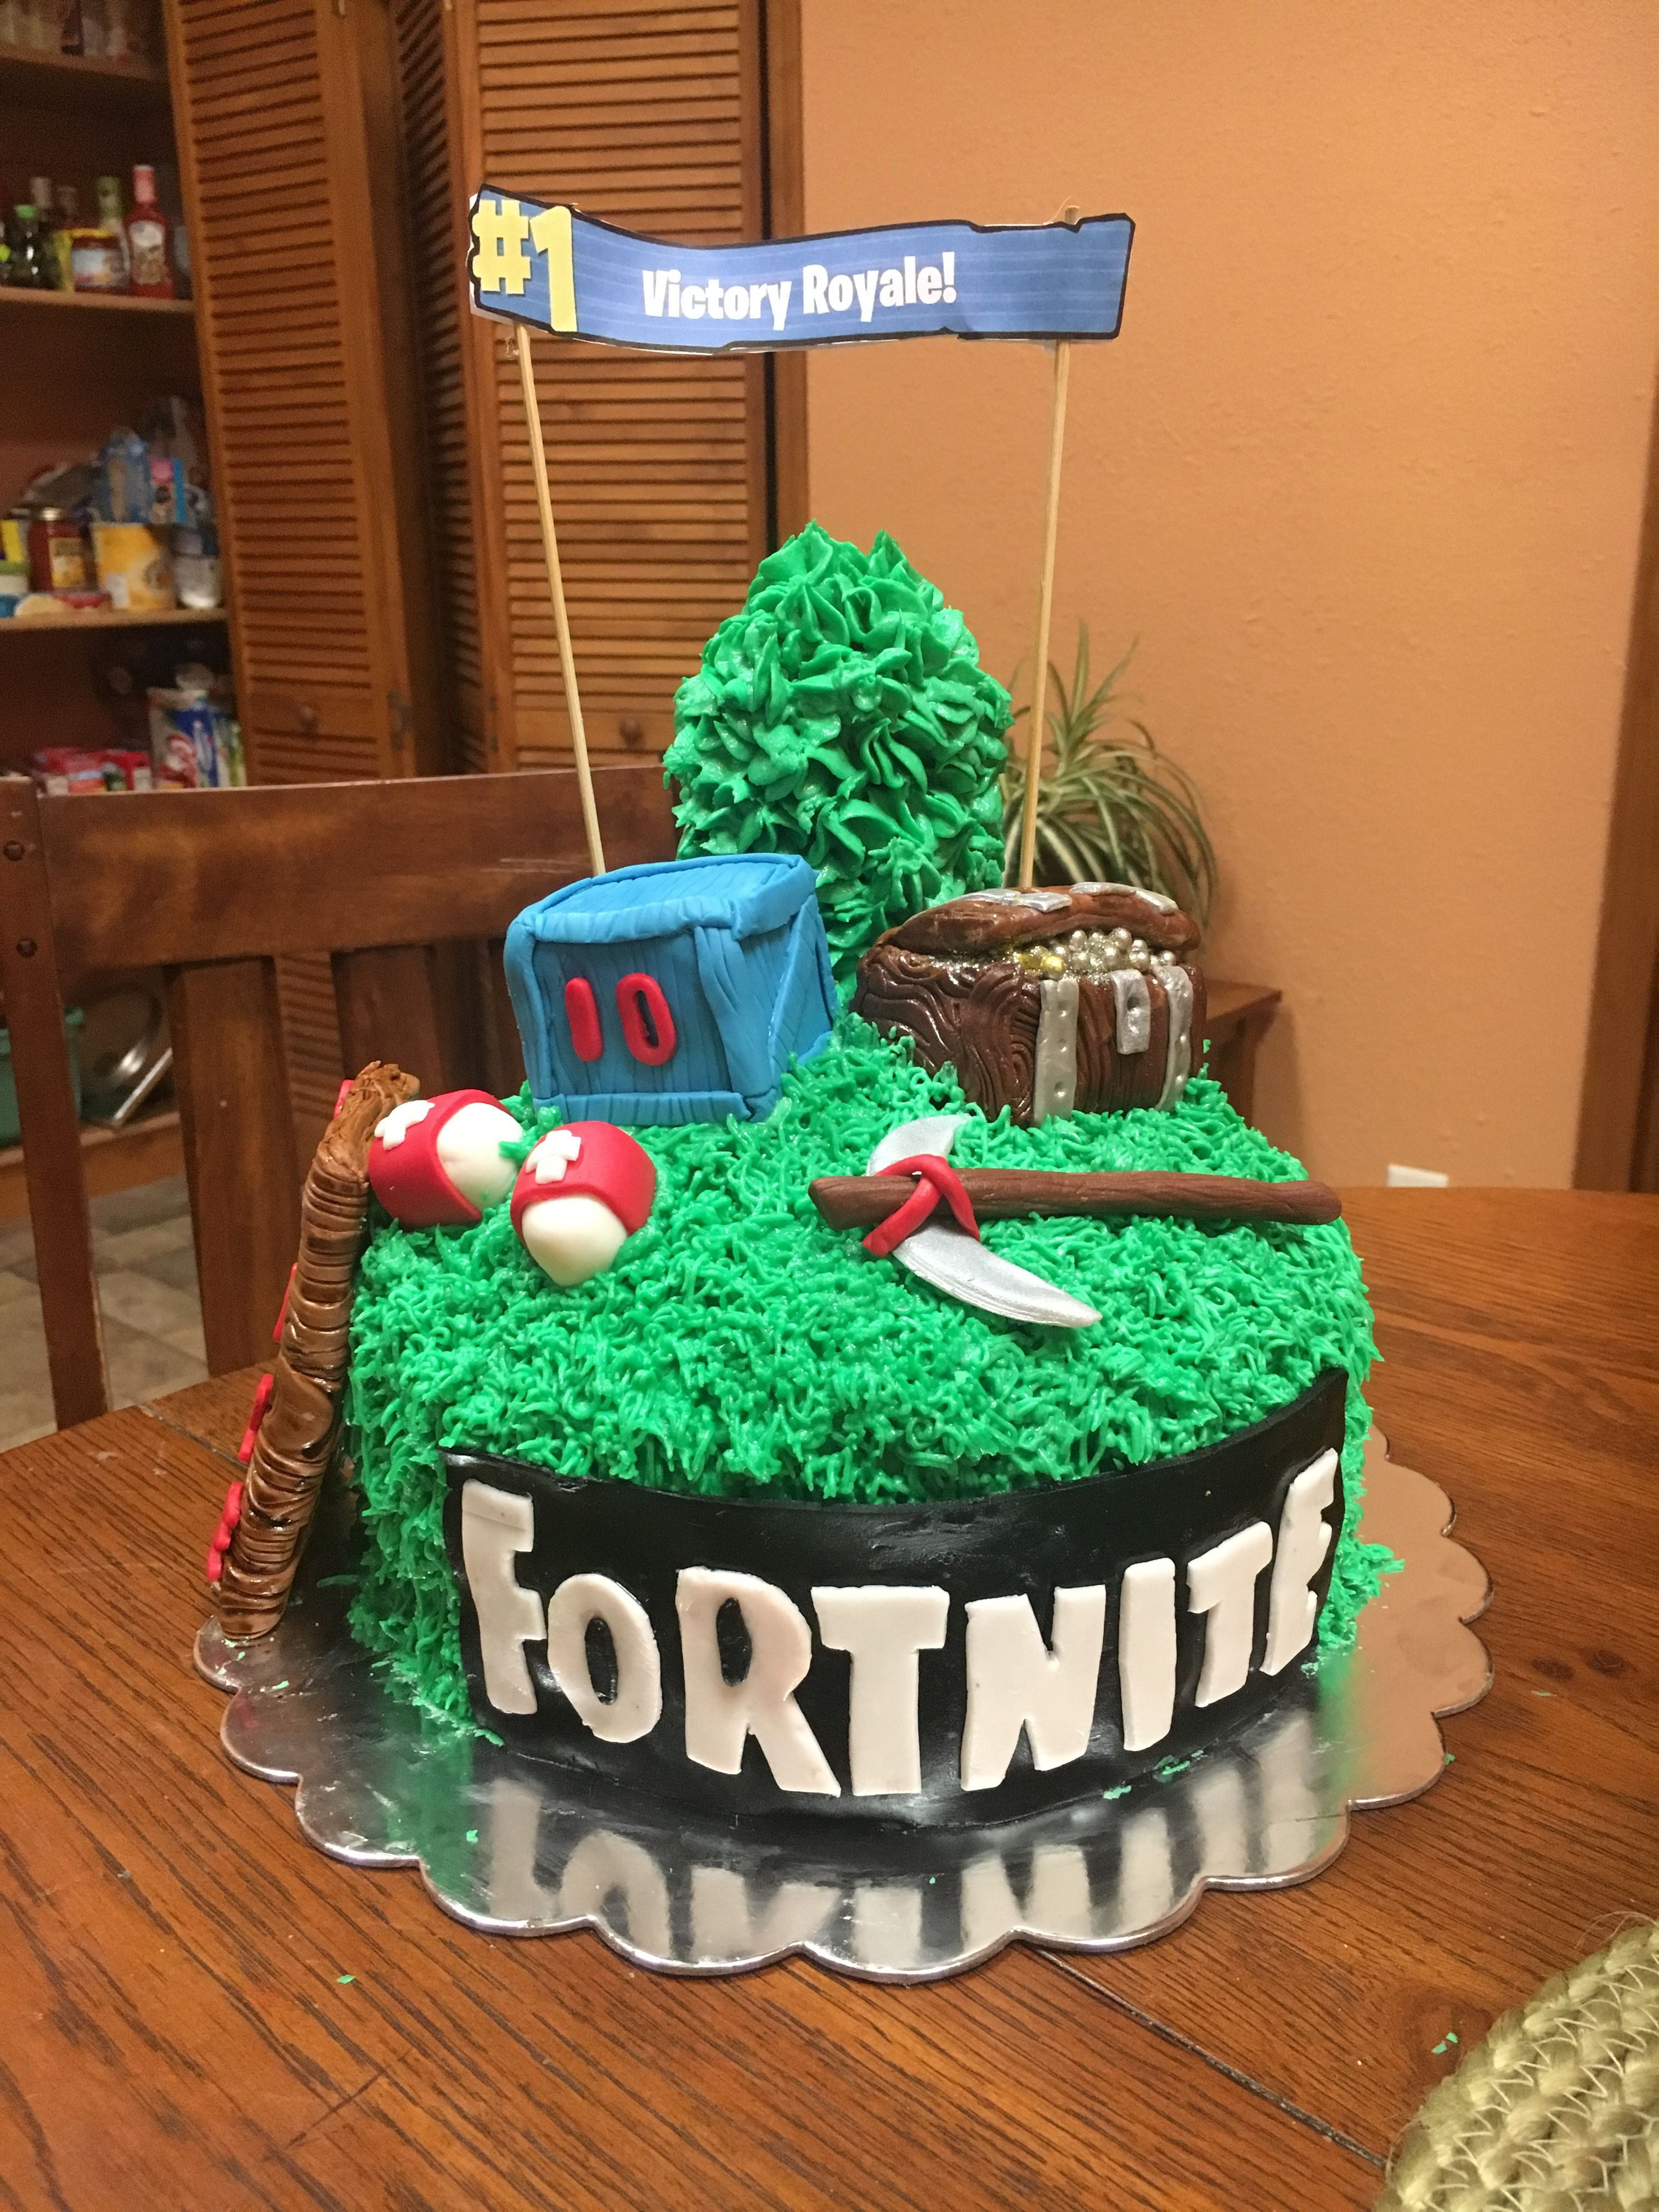 Fortnite Cake With Images Birthday Diy Cake 11th Birthday